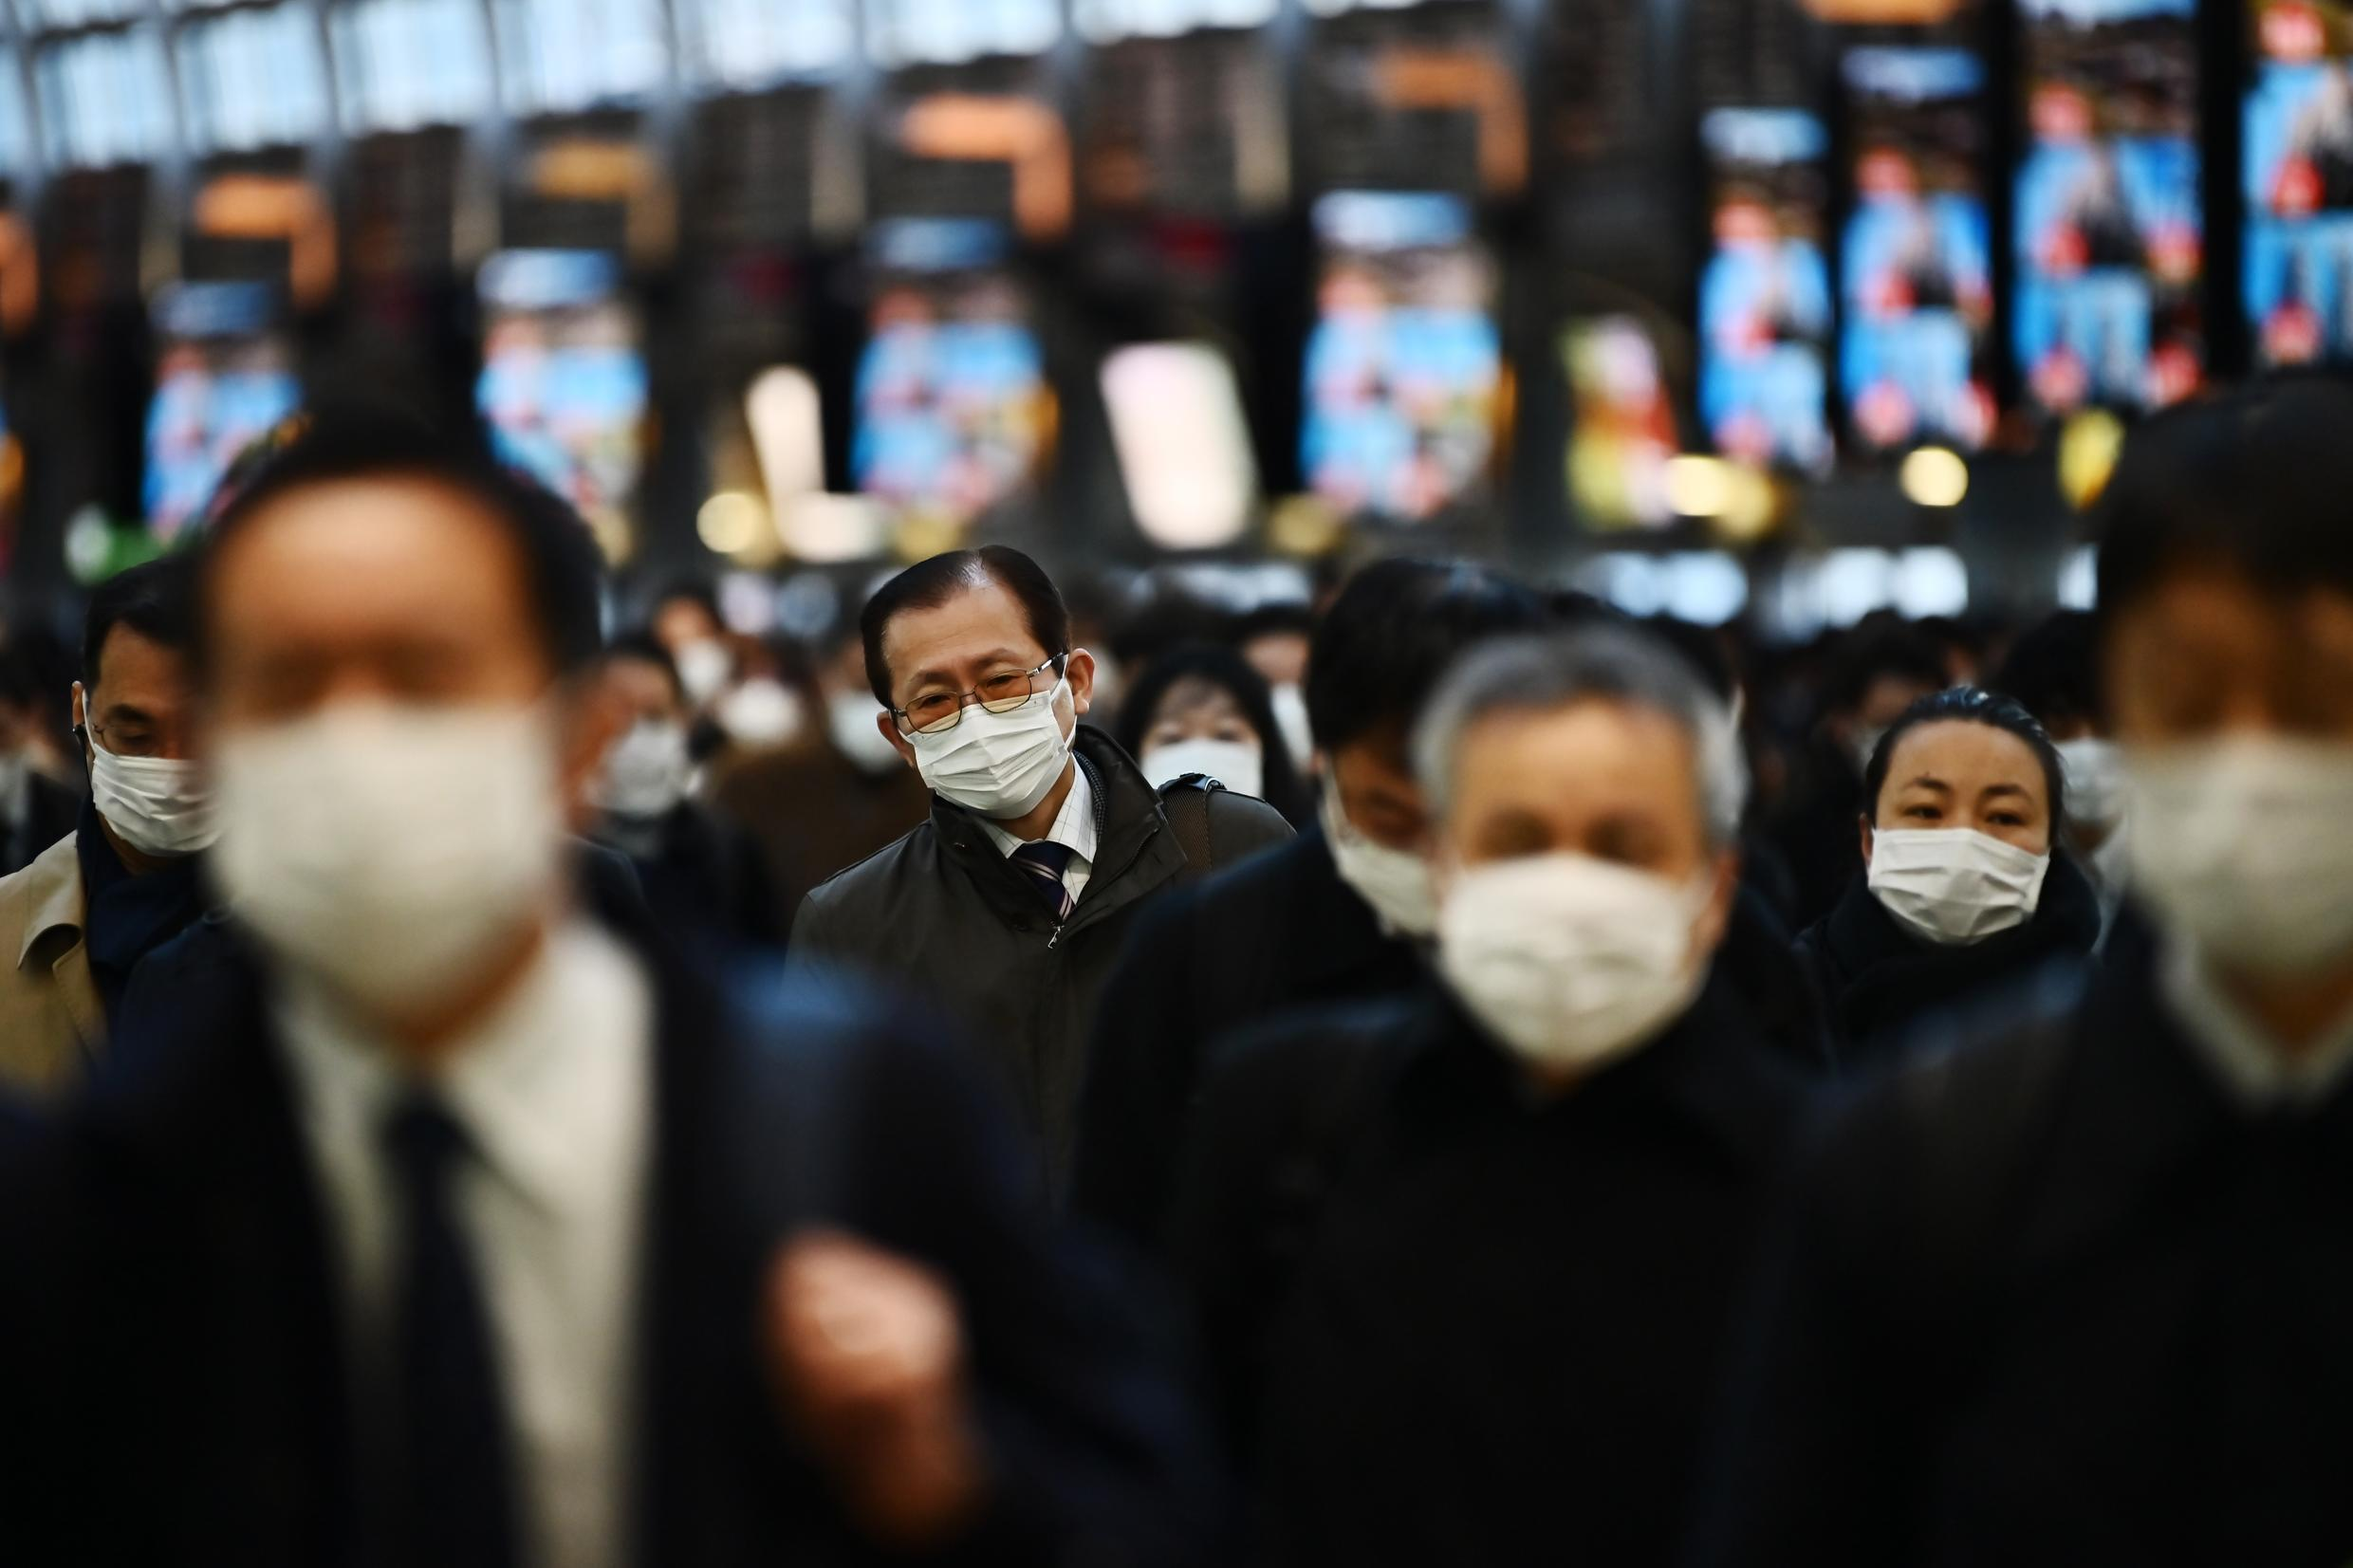 Japan's government has struggled to induce firms to offer teleworking, but the coronavirus epidemic means many are now experimenting with working from home